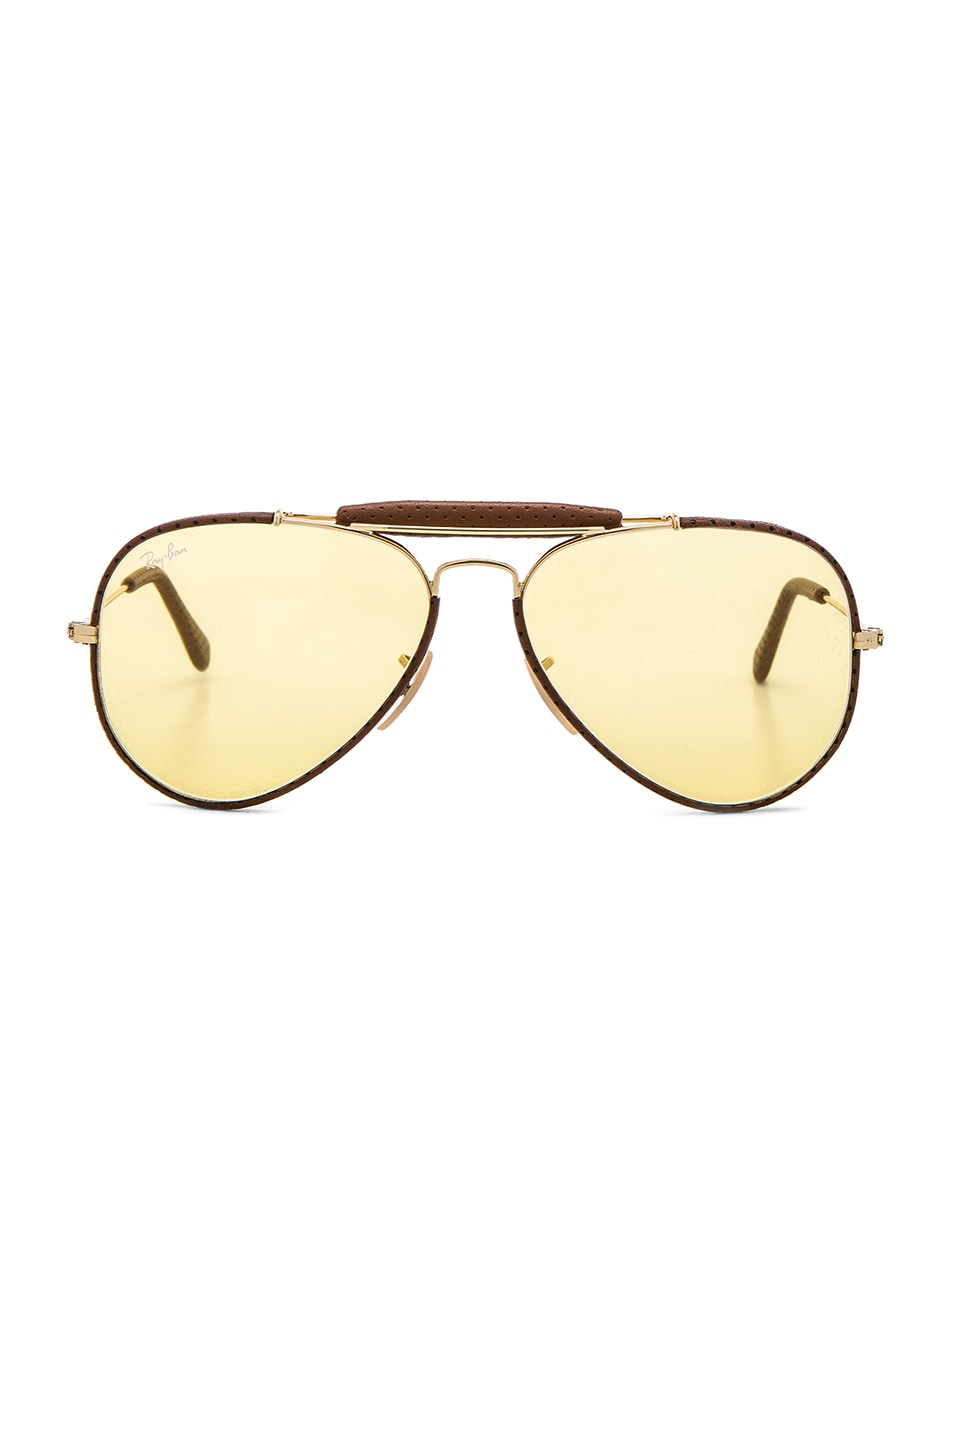 Image 1 of Ray-Ban Aviator Craft Sunglasses in Brown Leather & Yellow